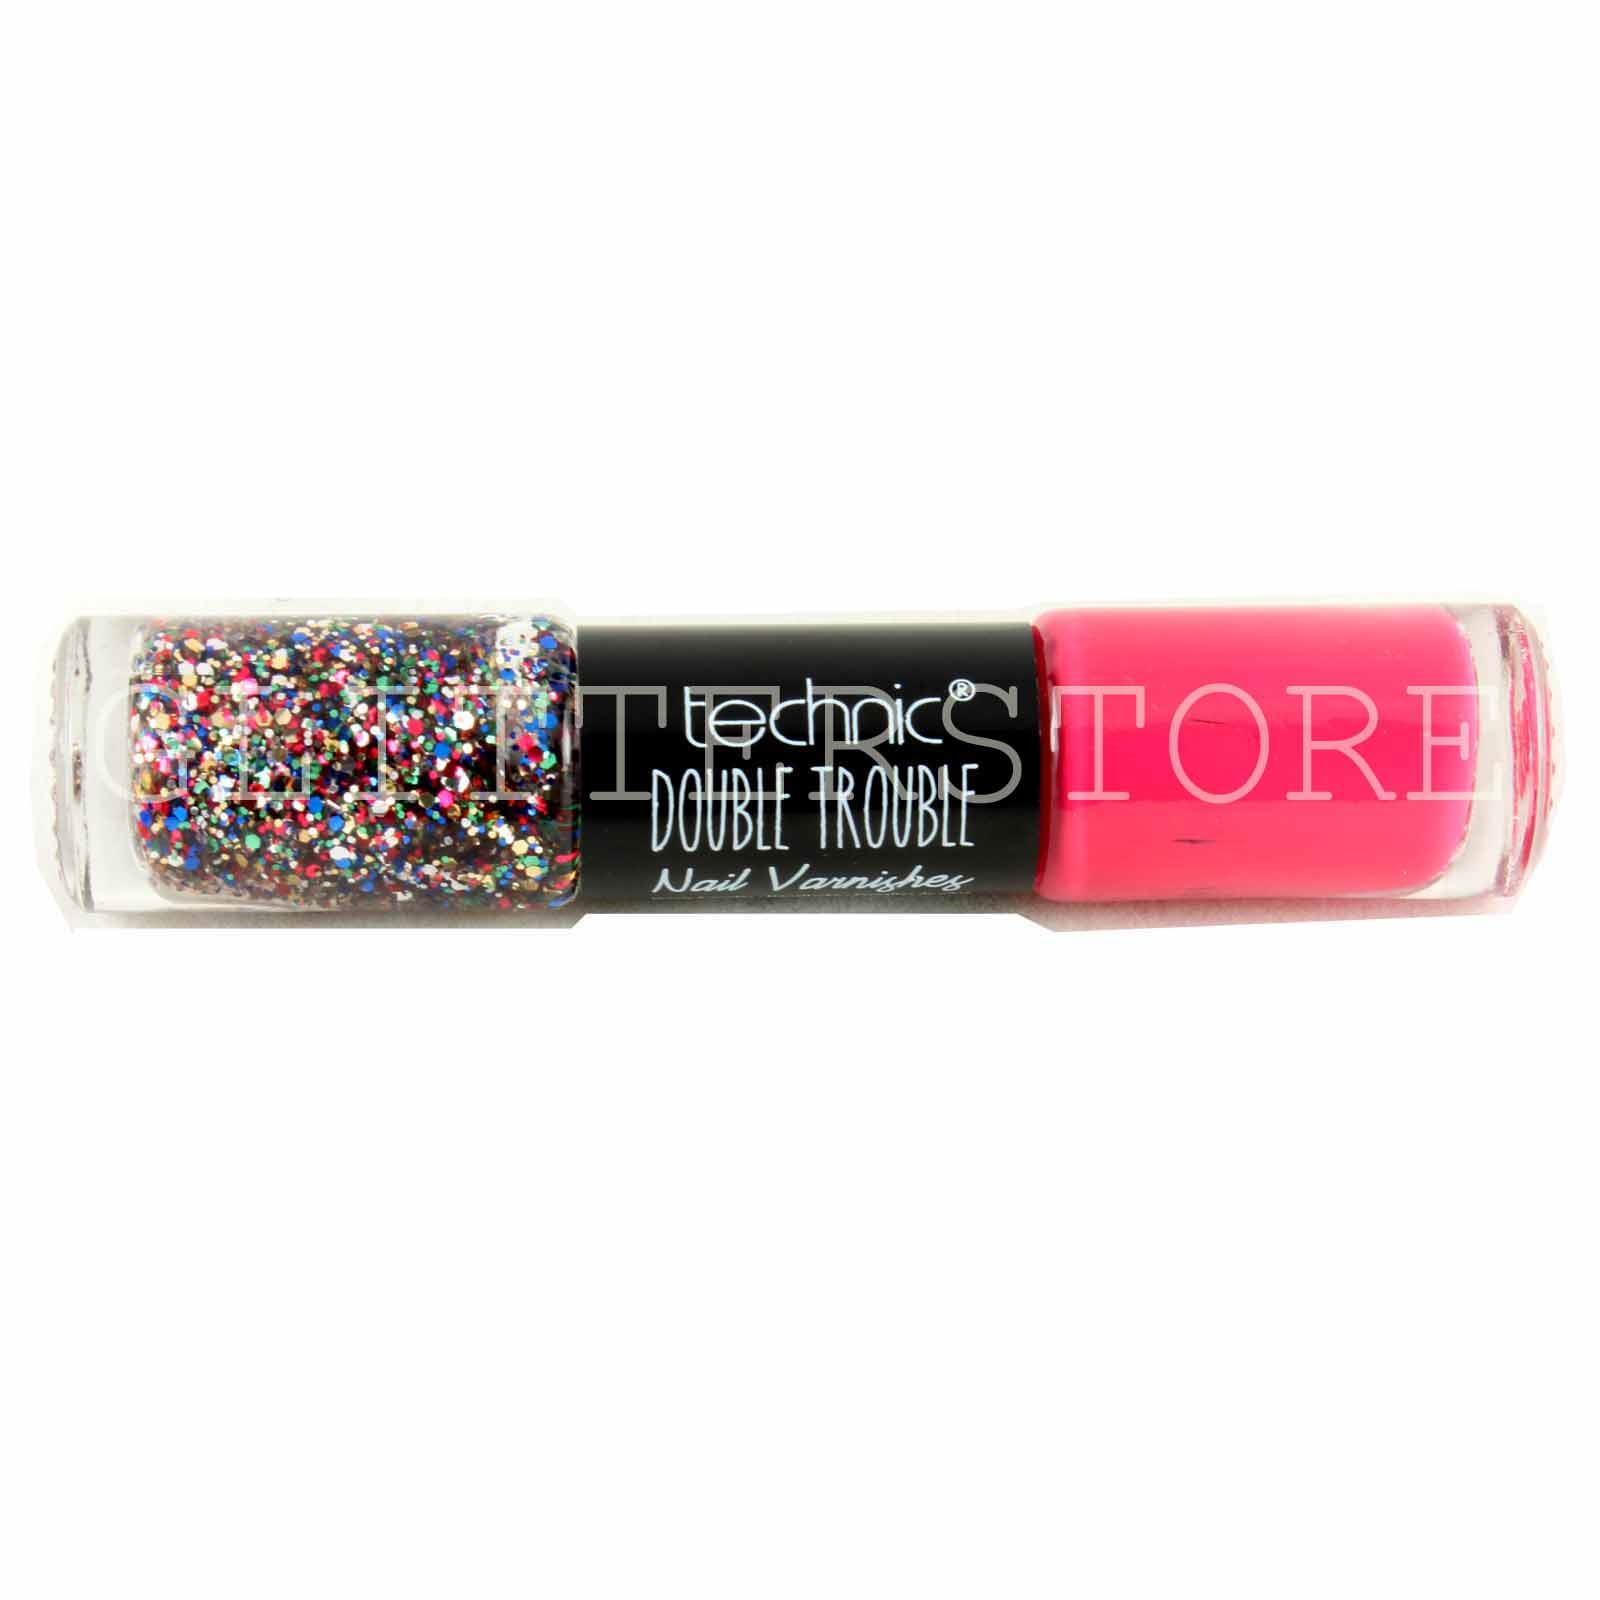 TECHNIC-DOUBLE-TROUBLE-NAIL-VARNISH-COLOUR-AND-GLITTER-POLISH